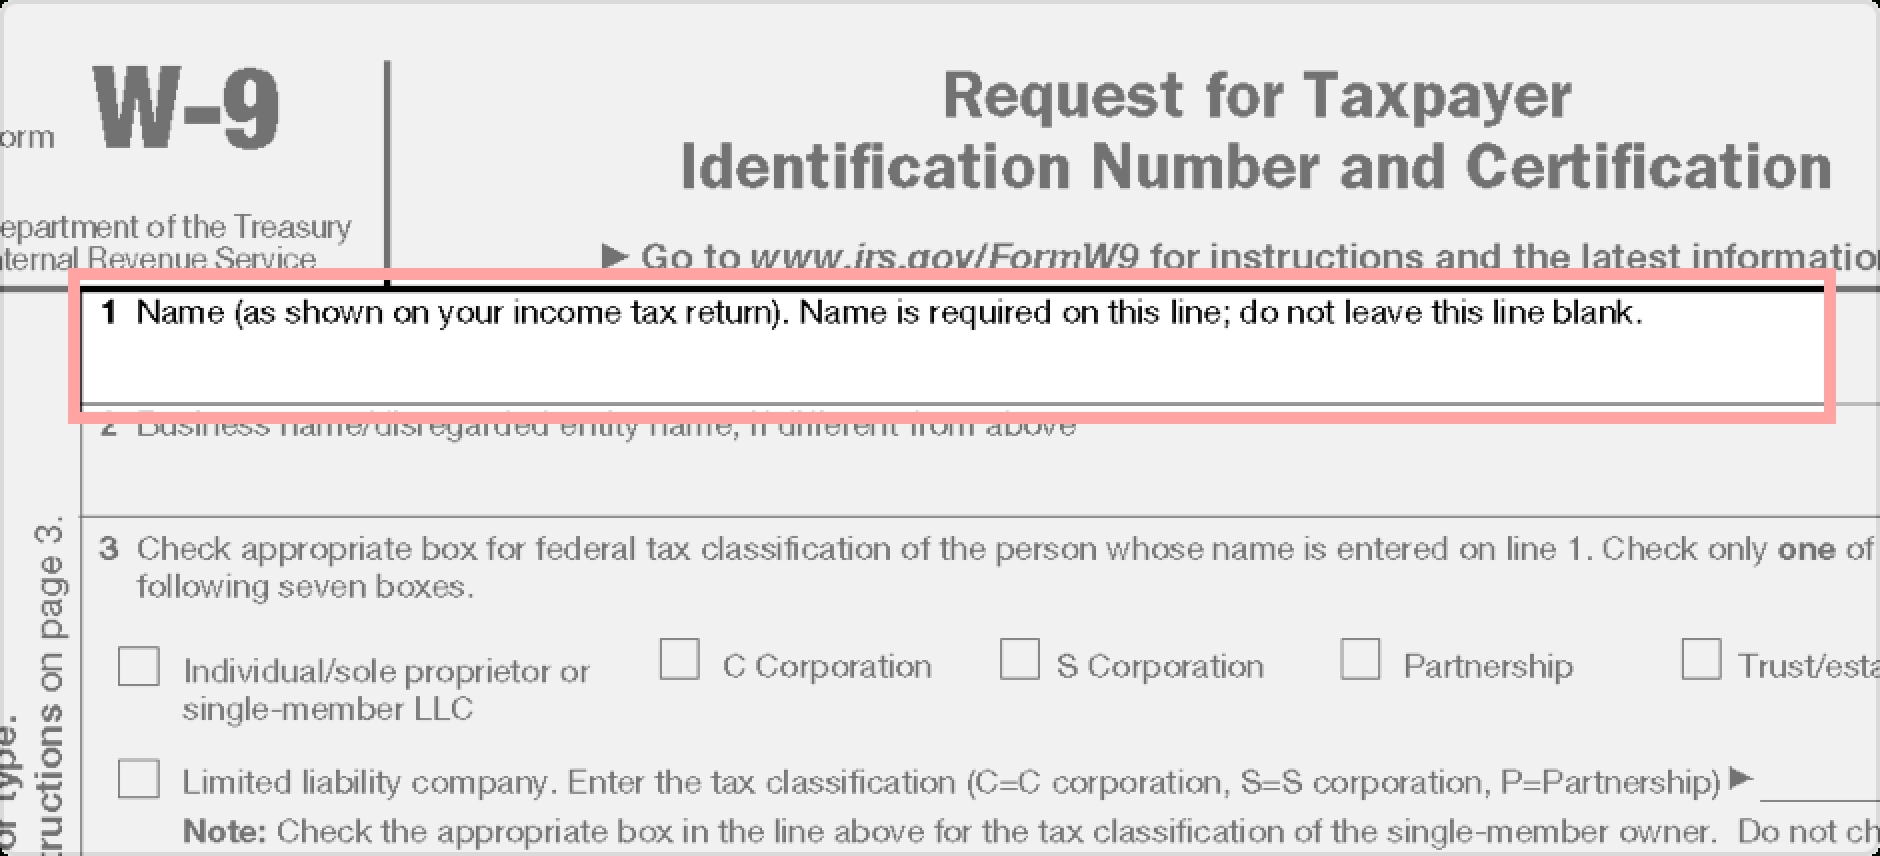 W-9 Form: Fillable, Printable, Download Free. 2019 Instructions-2020 W-9 Blank Pdf